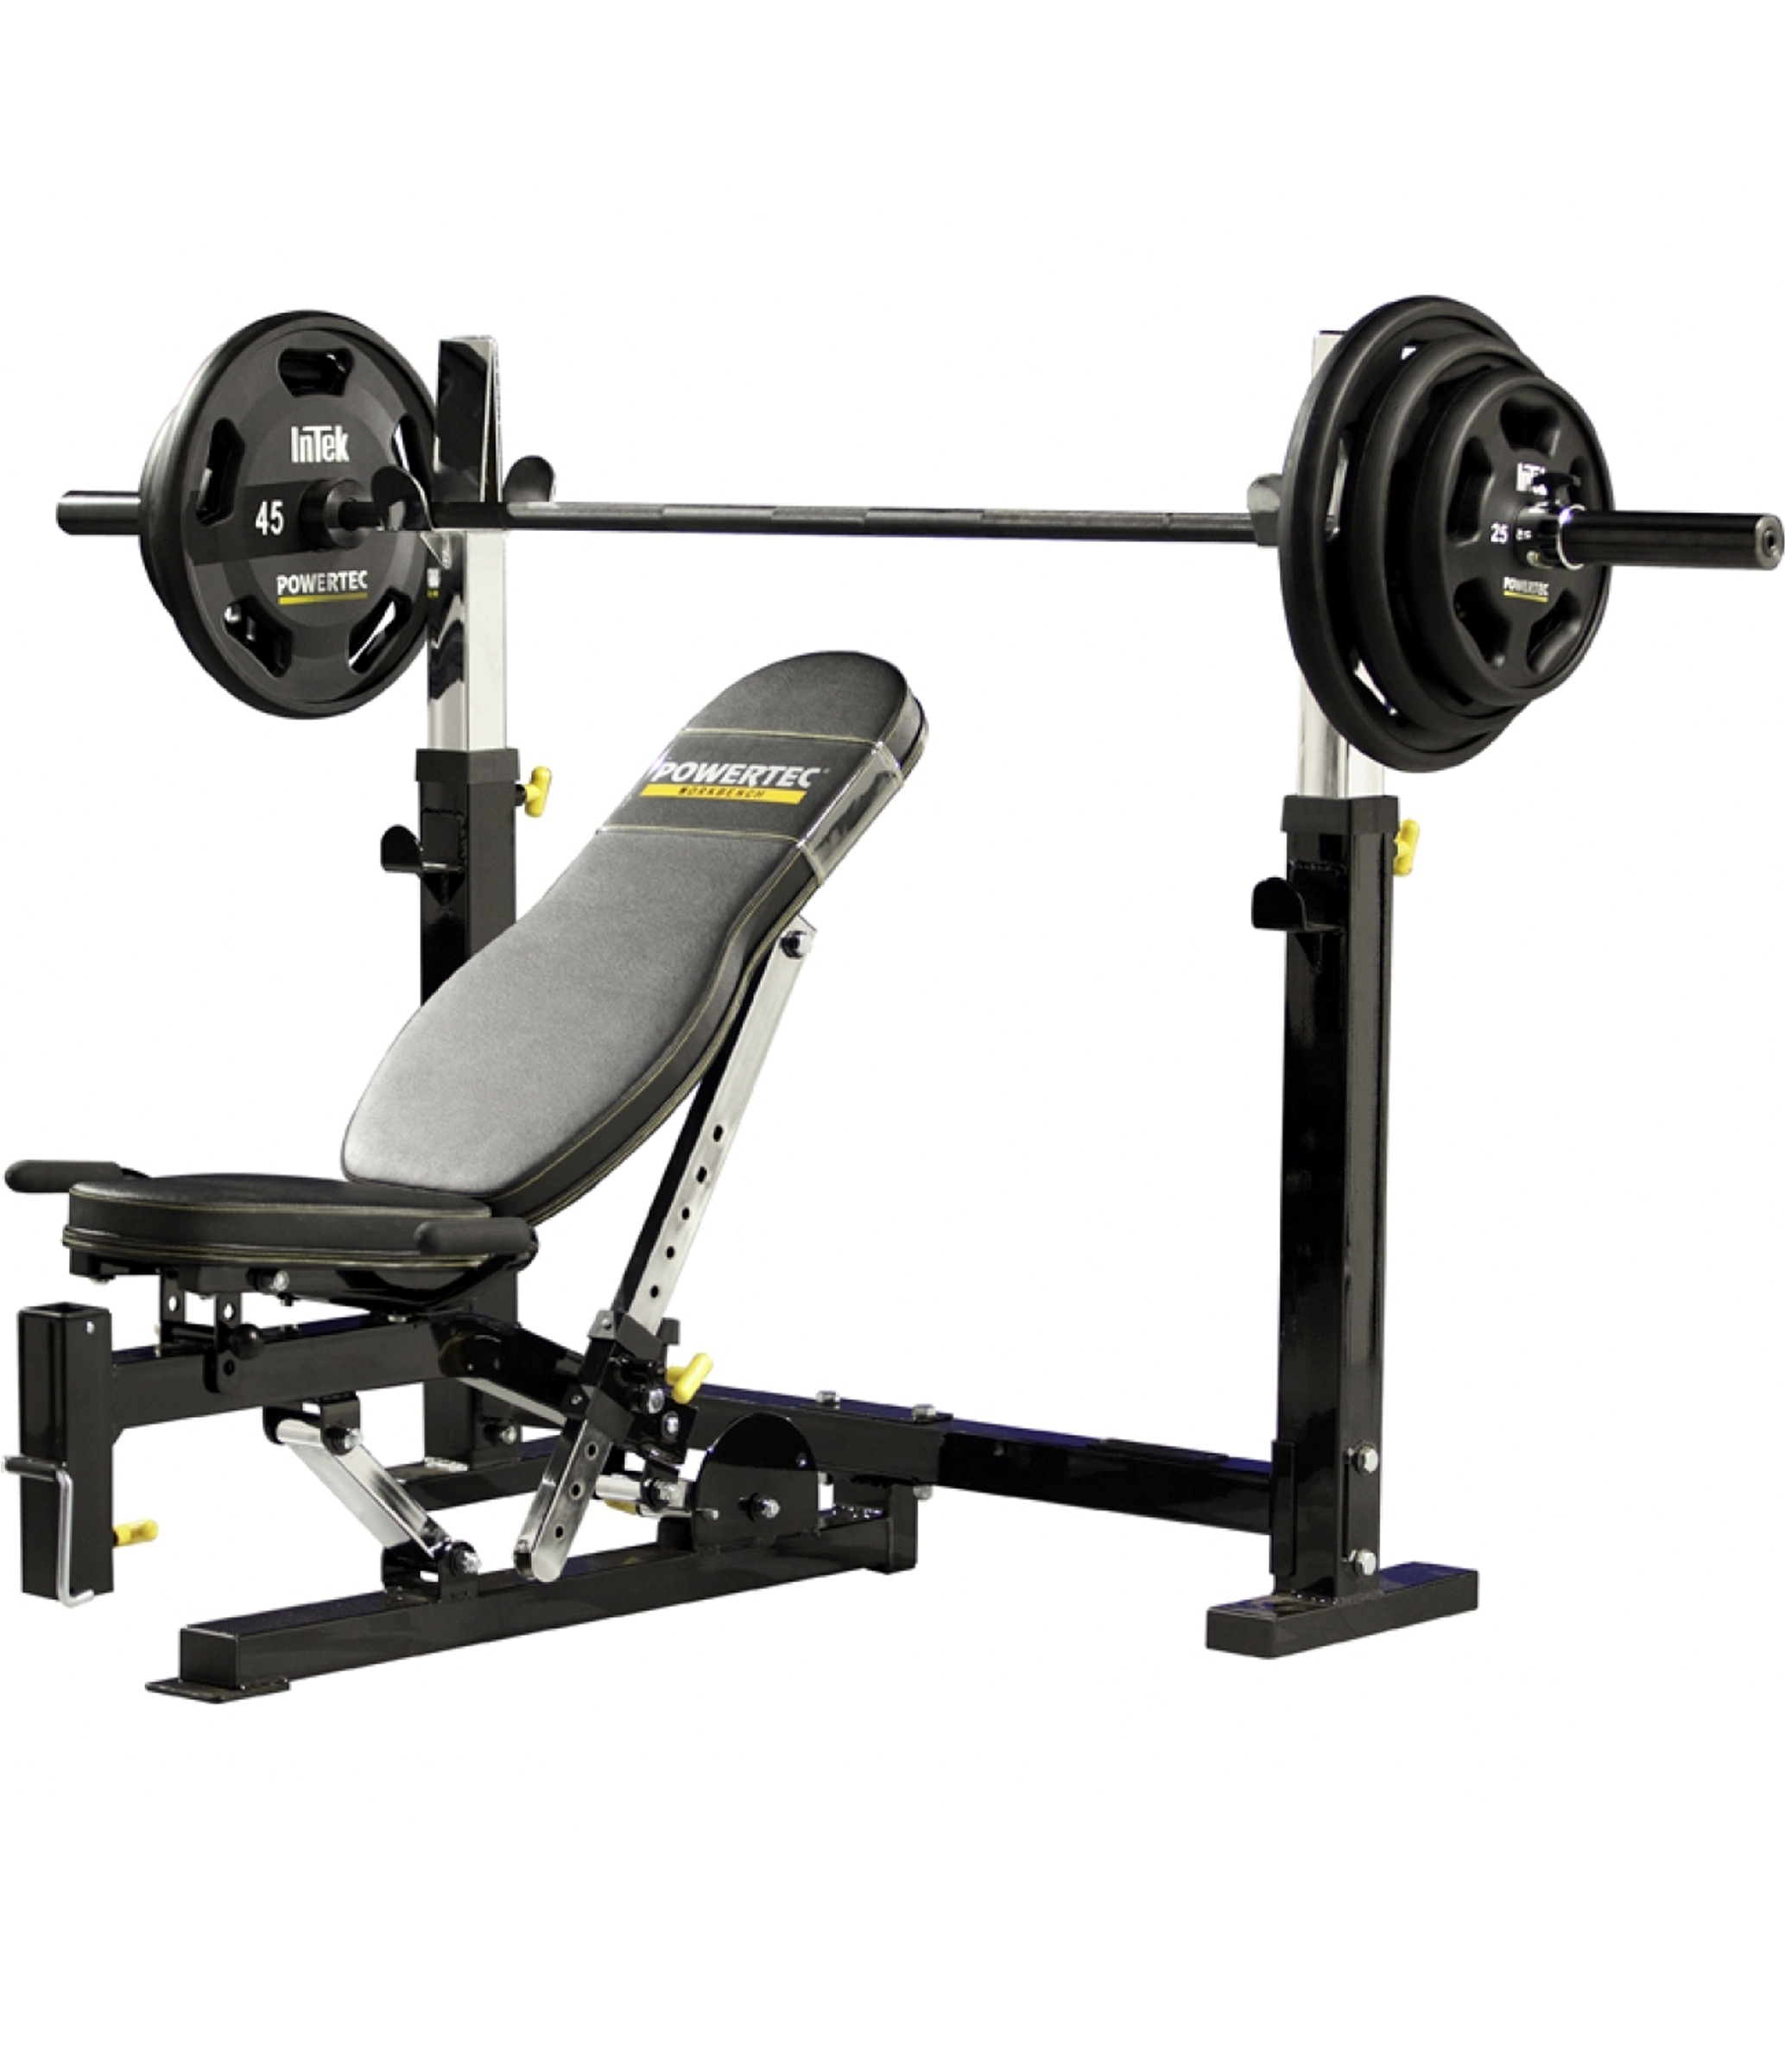 arm with decline leg lifting developer xm mark weight curl flat and bench p incline x